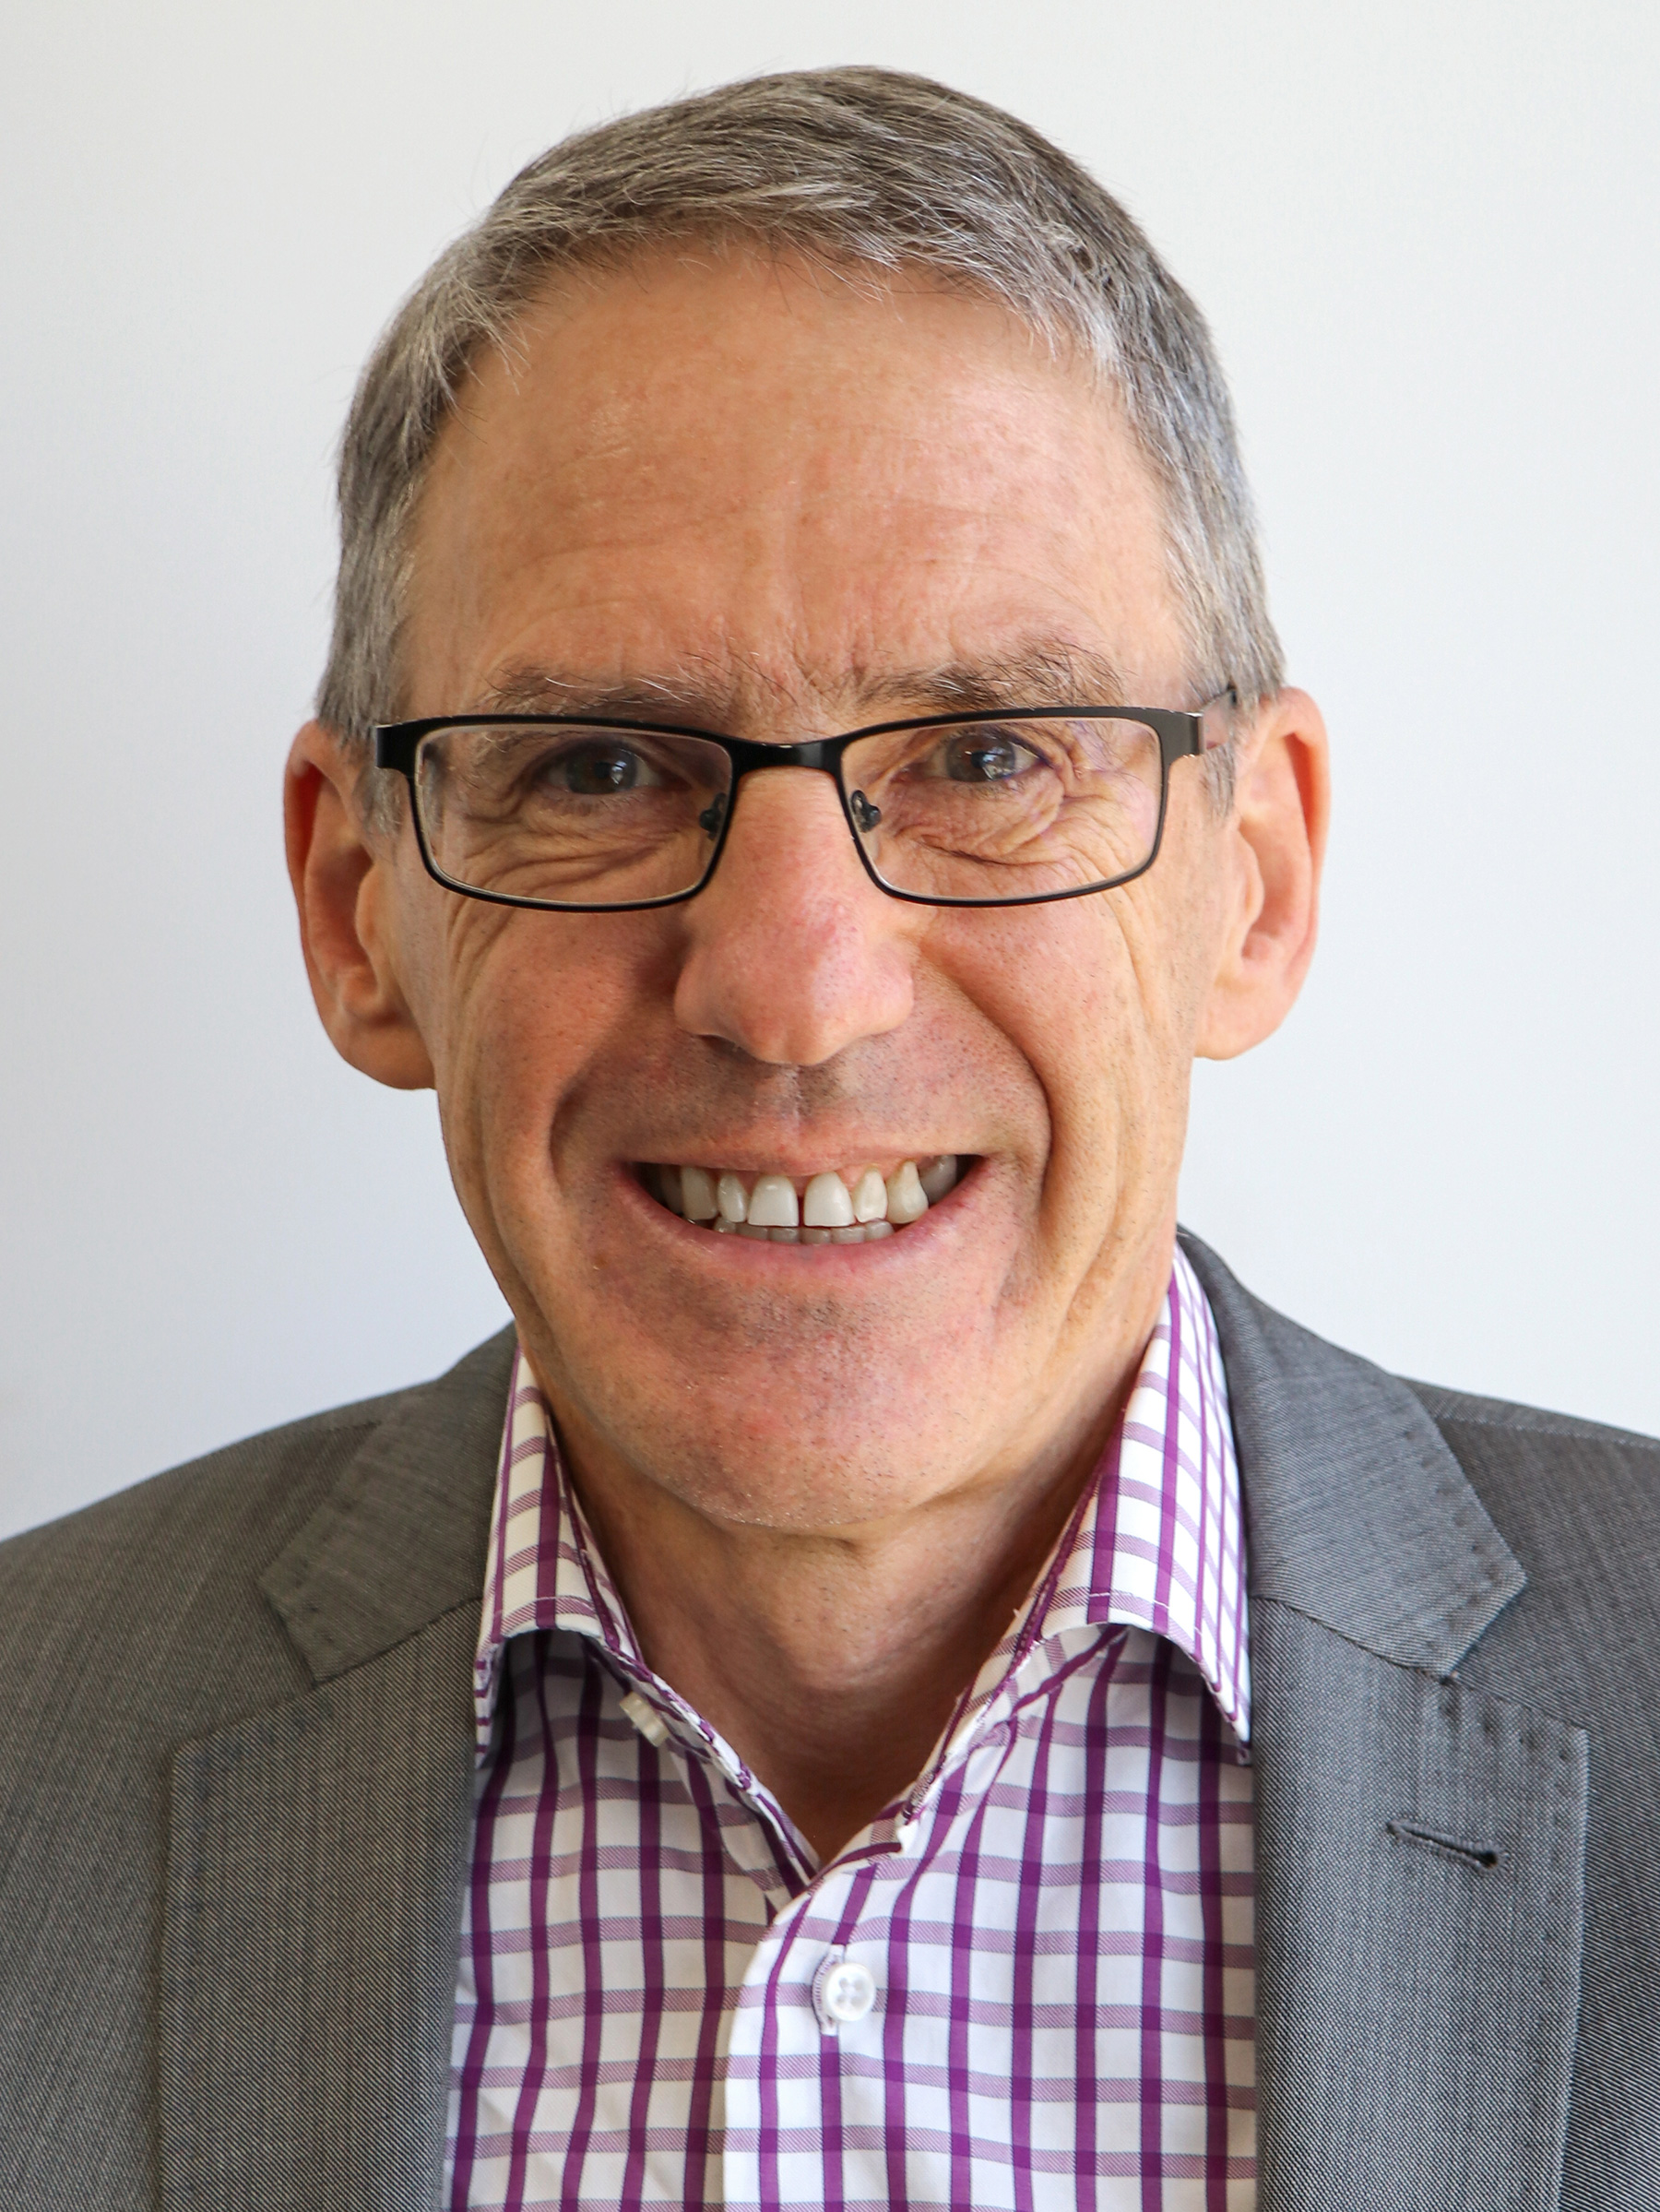 Portrait Of Kevin Neville, Board Member At Interact Australia